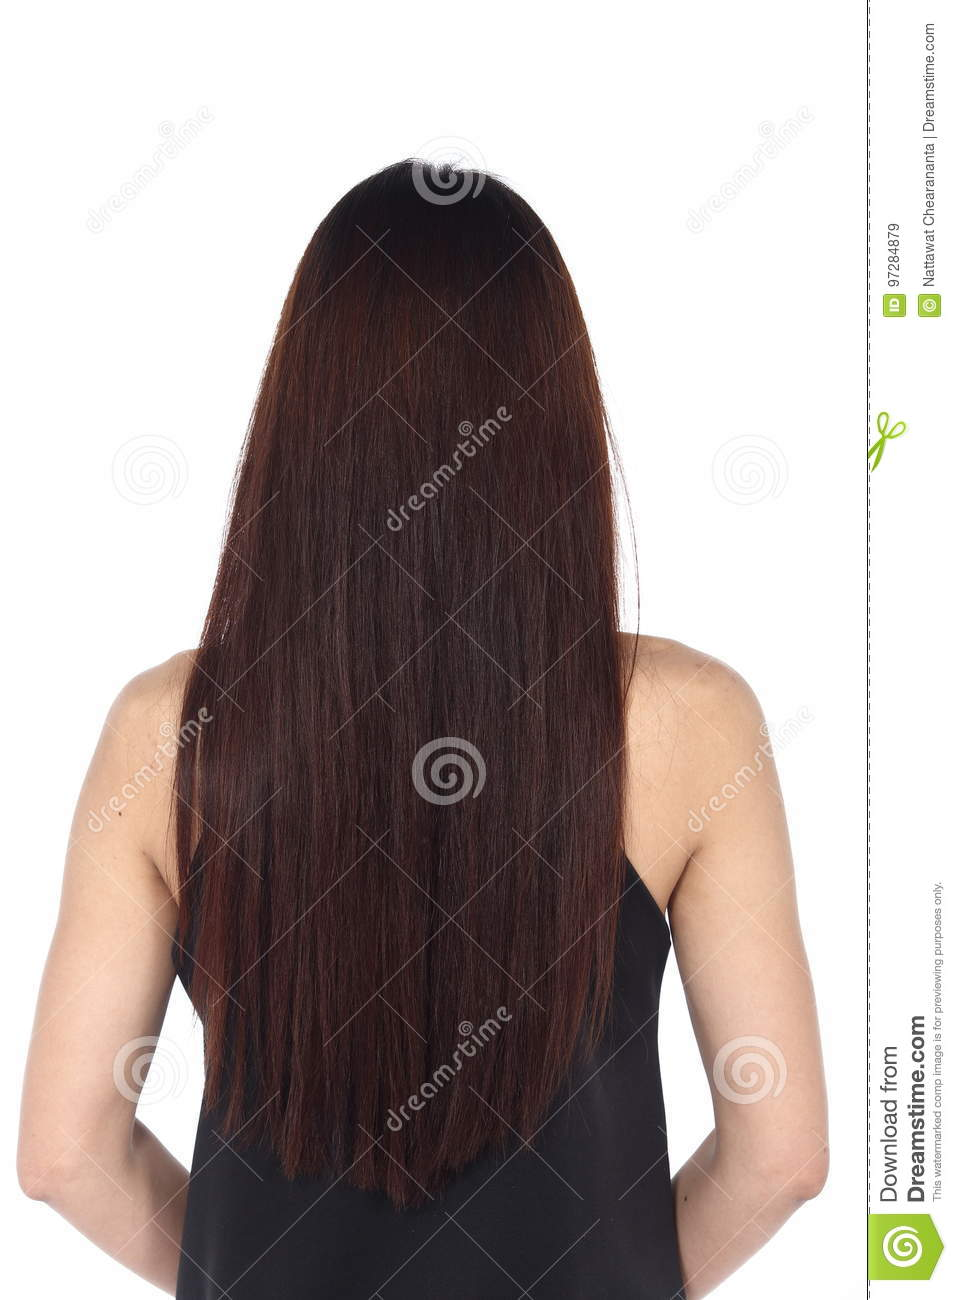 Asian Transgender Woman before make up hair style. no retouch, f